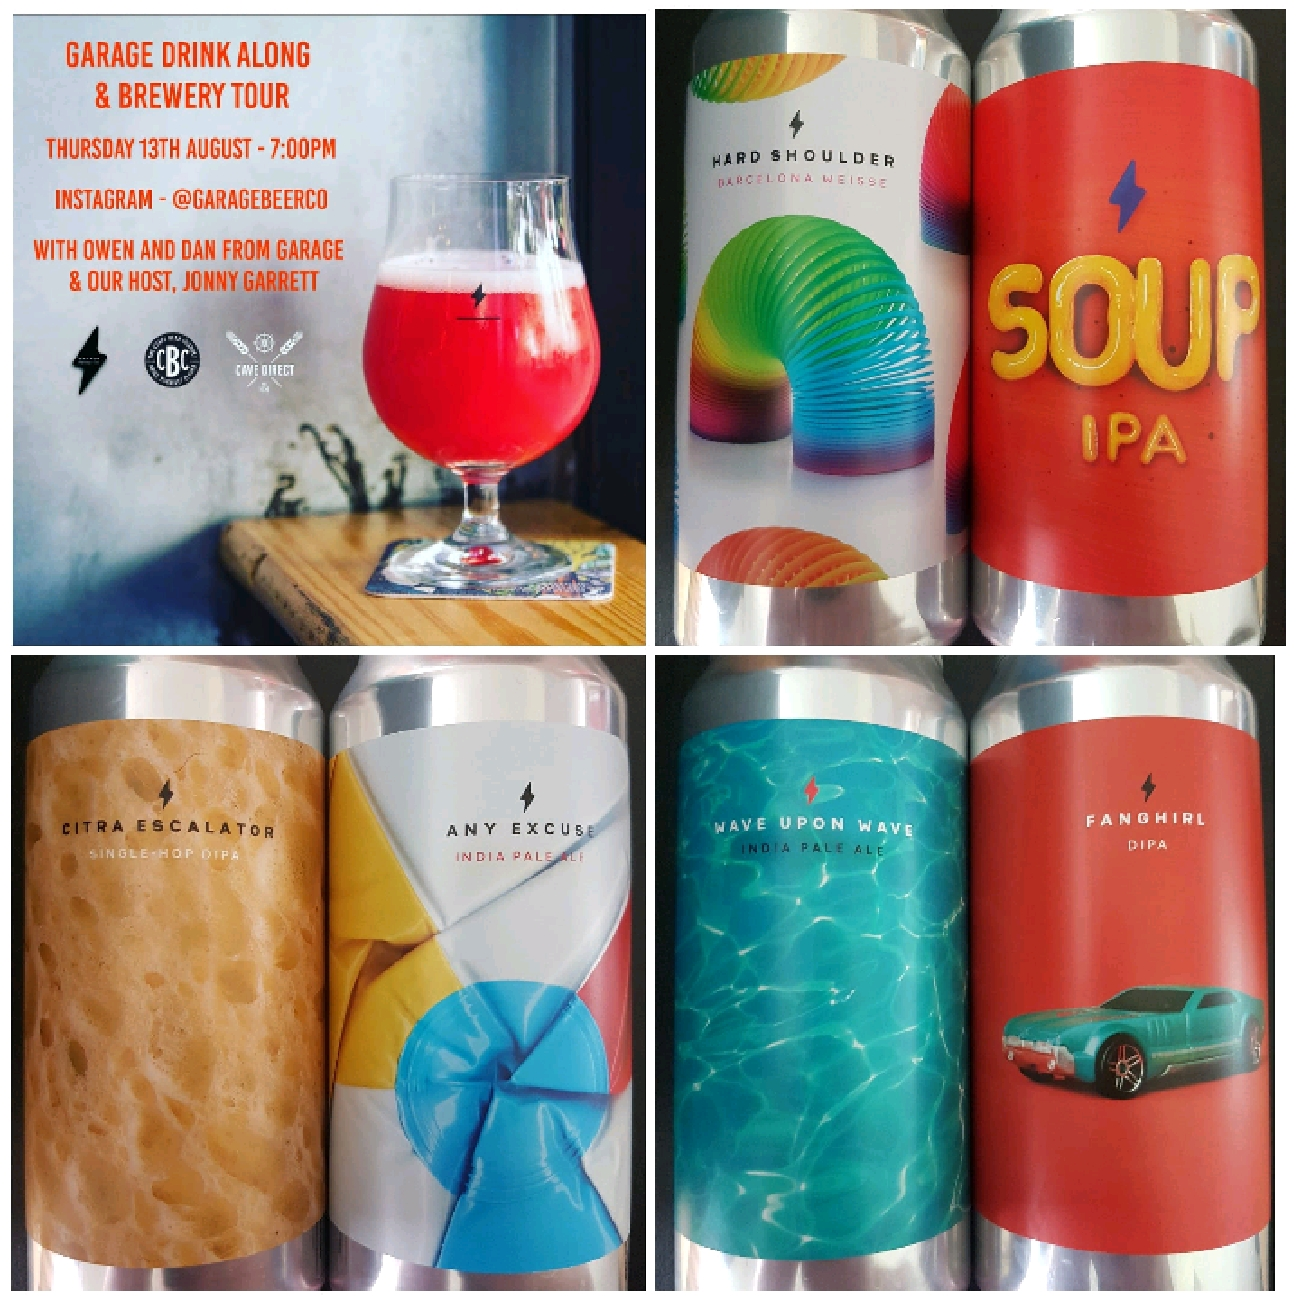 Garage Virtual Tasting beers (6x440ml cans)